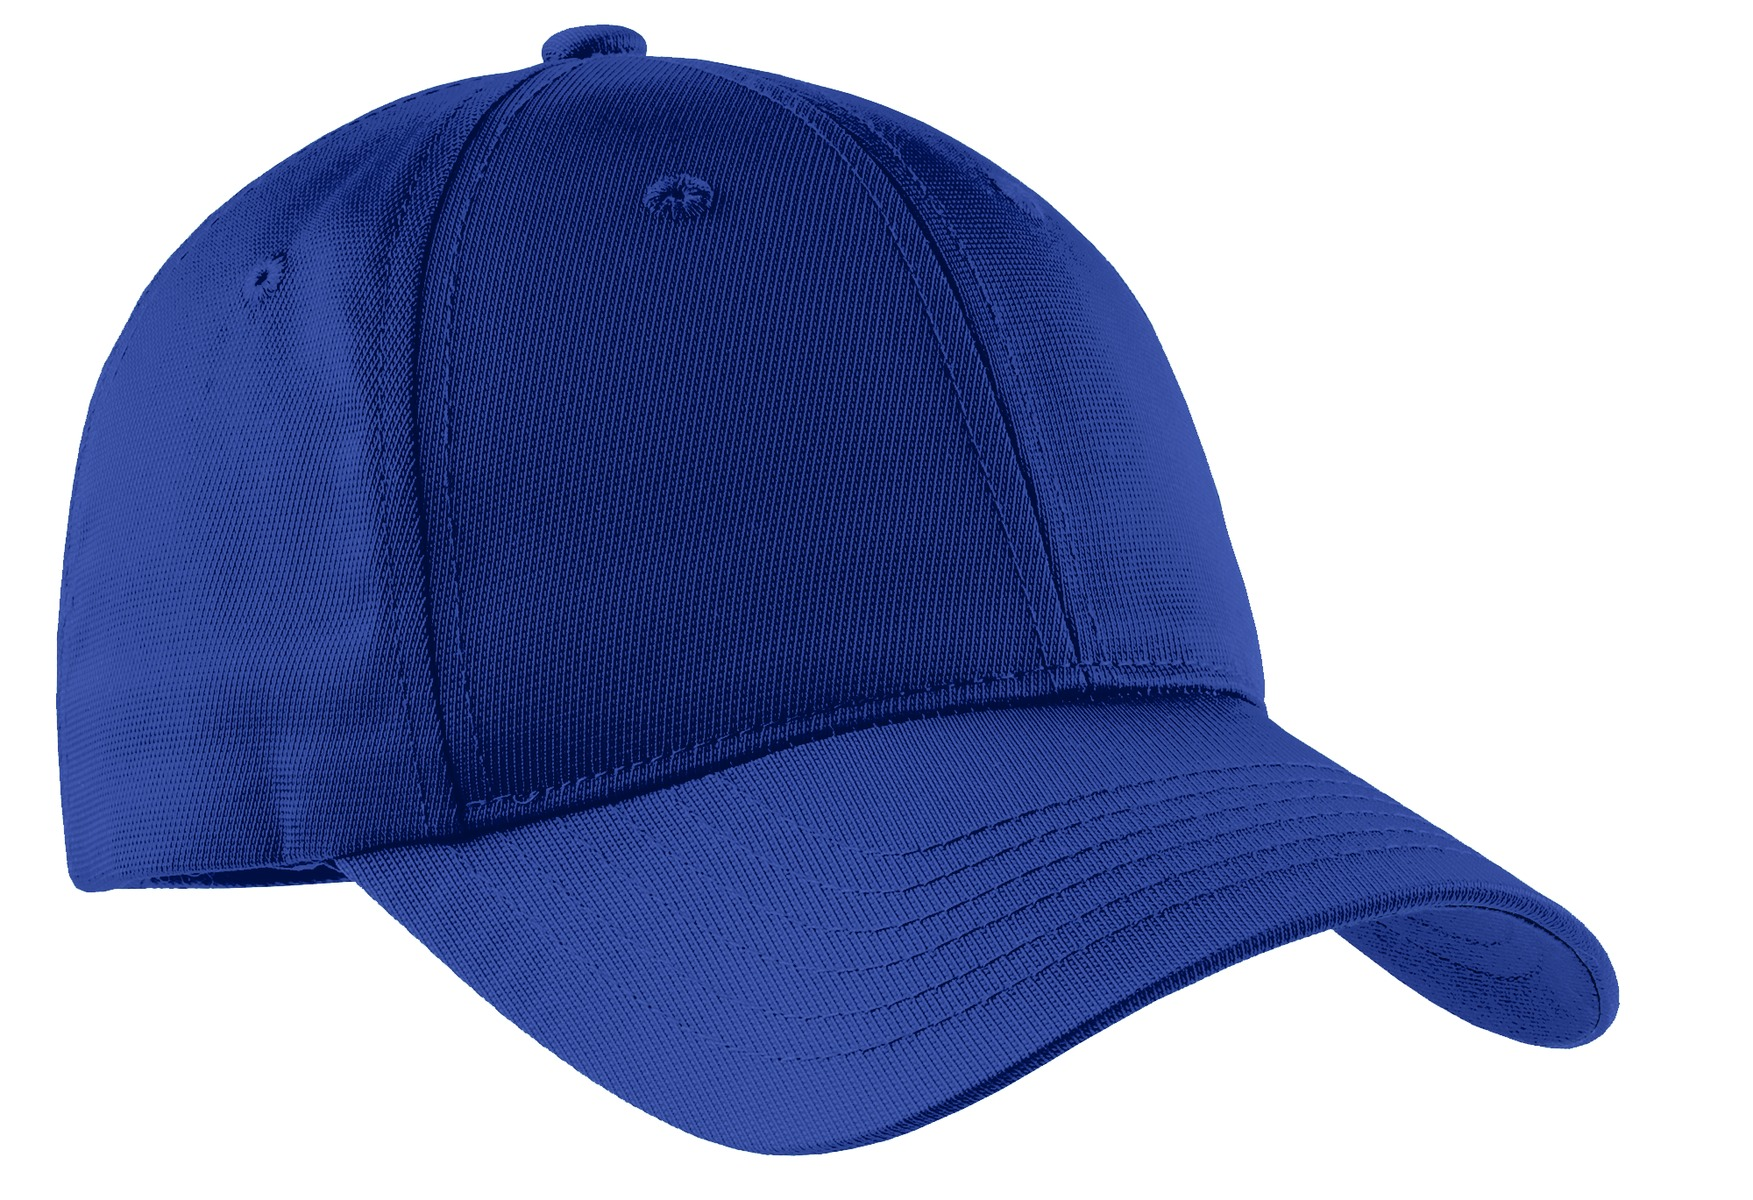 Sport-Tek ®  Dry Zone ®  Nylon Cap. STC10 - True Royal